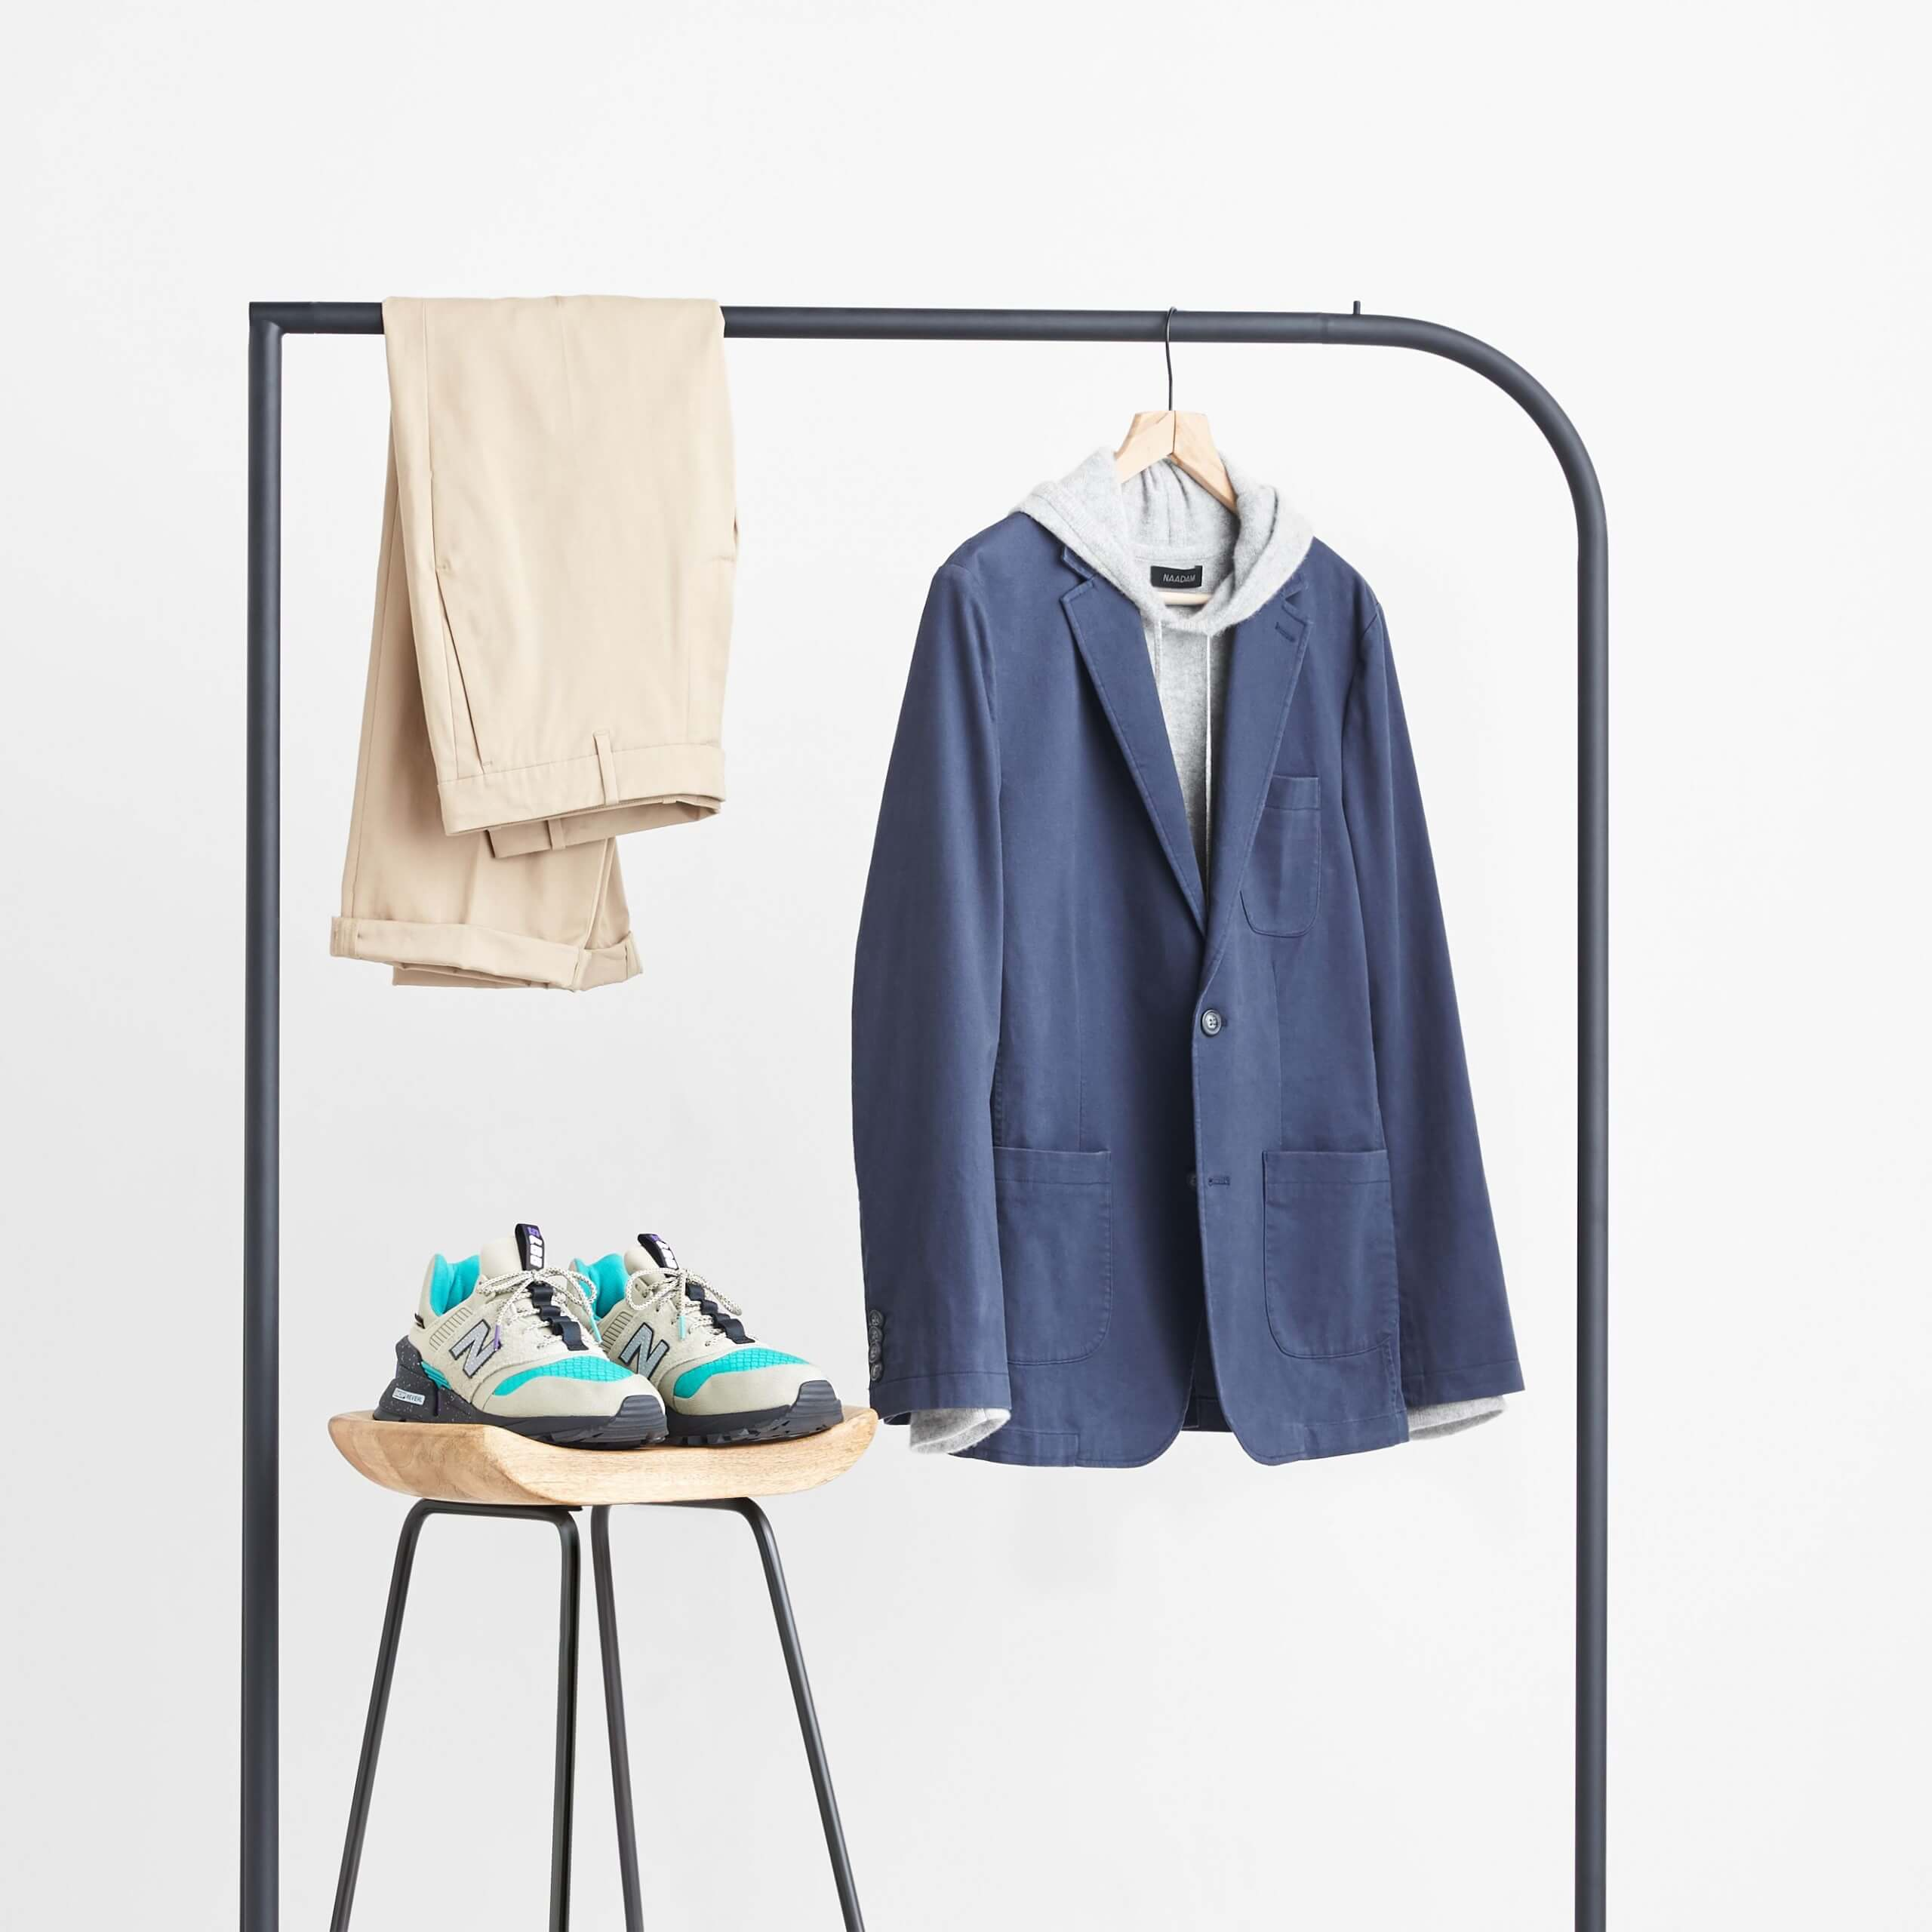 Stitch Fix Men's navy blazer, grey hoodie and tan chinos hanging on a black rack next to tan nylon sneakers sitting on a wooden stool.